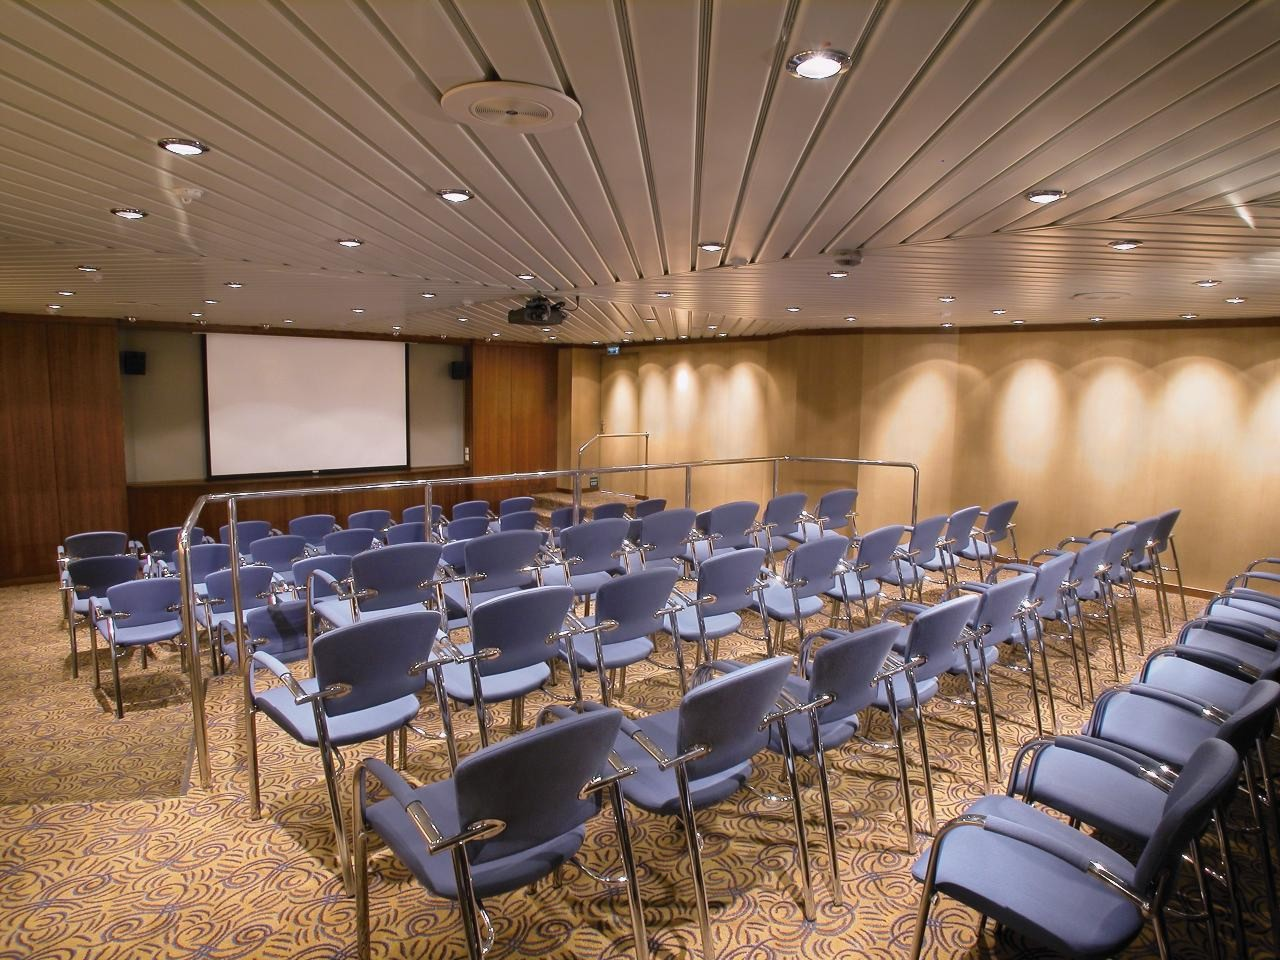 conference room clipart free - photo #38